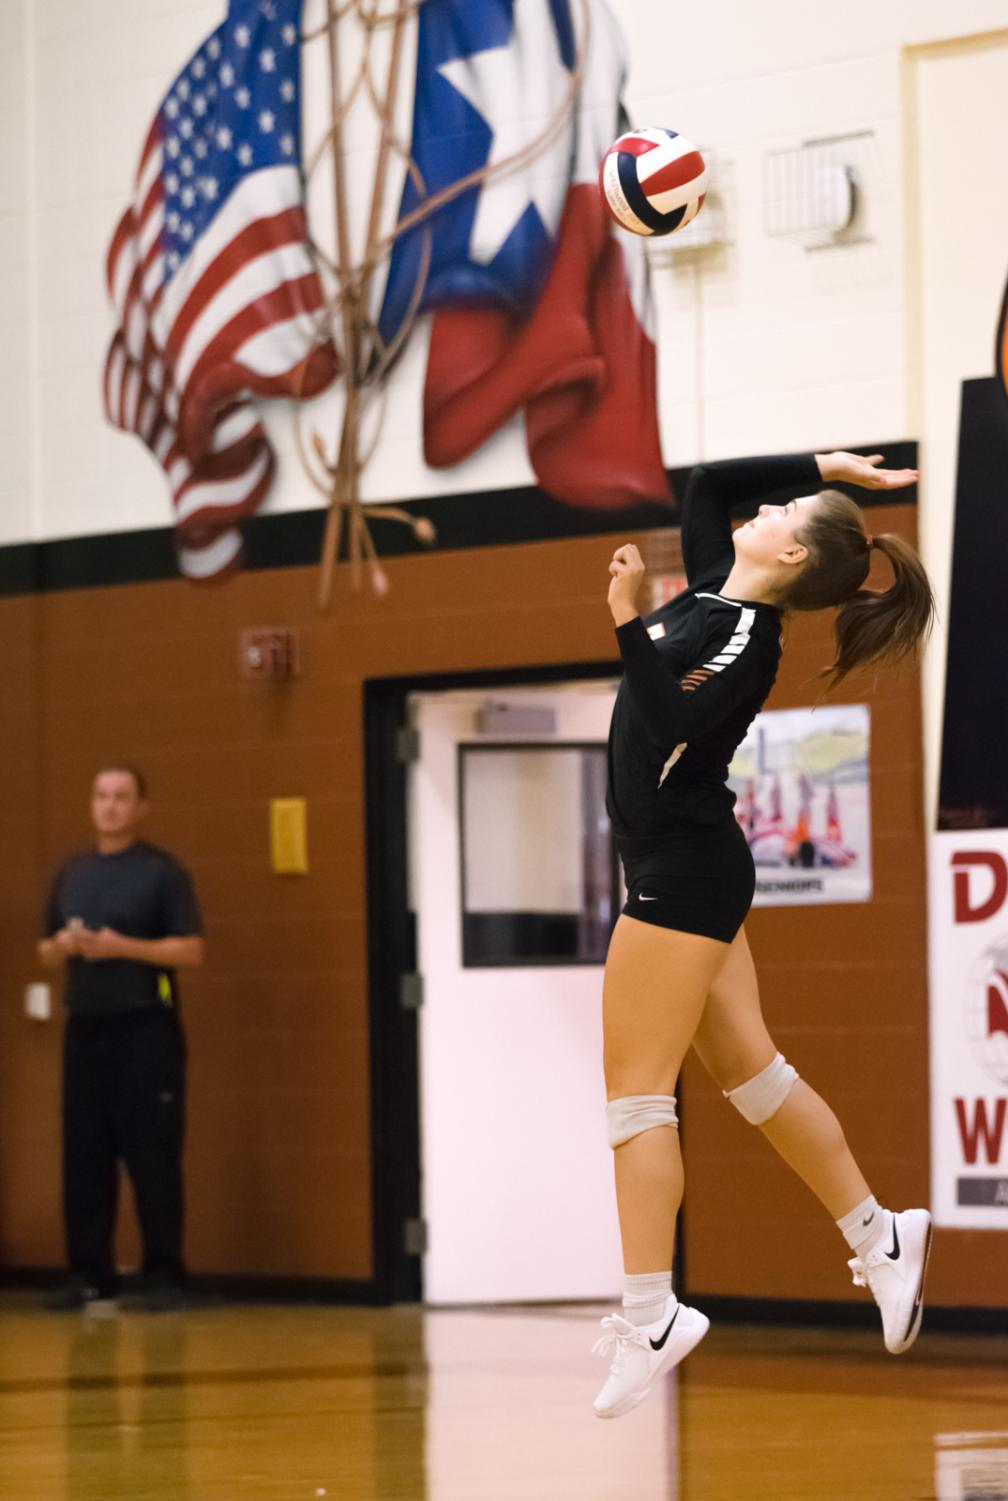 Kenna+Williams+%2722+jumps+to+serve+the+ball.+Williams%27+serve+resulted+in+a+point+for+the+Warriors+towards+the+end+of+the+second+set.